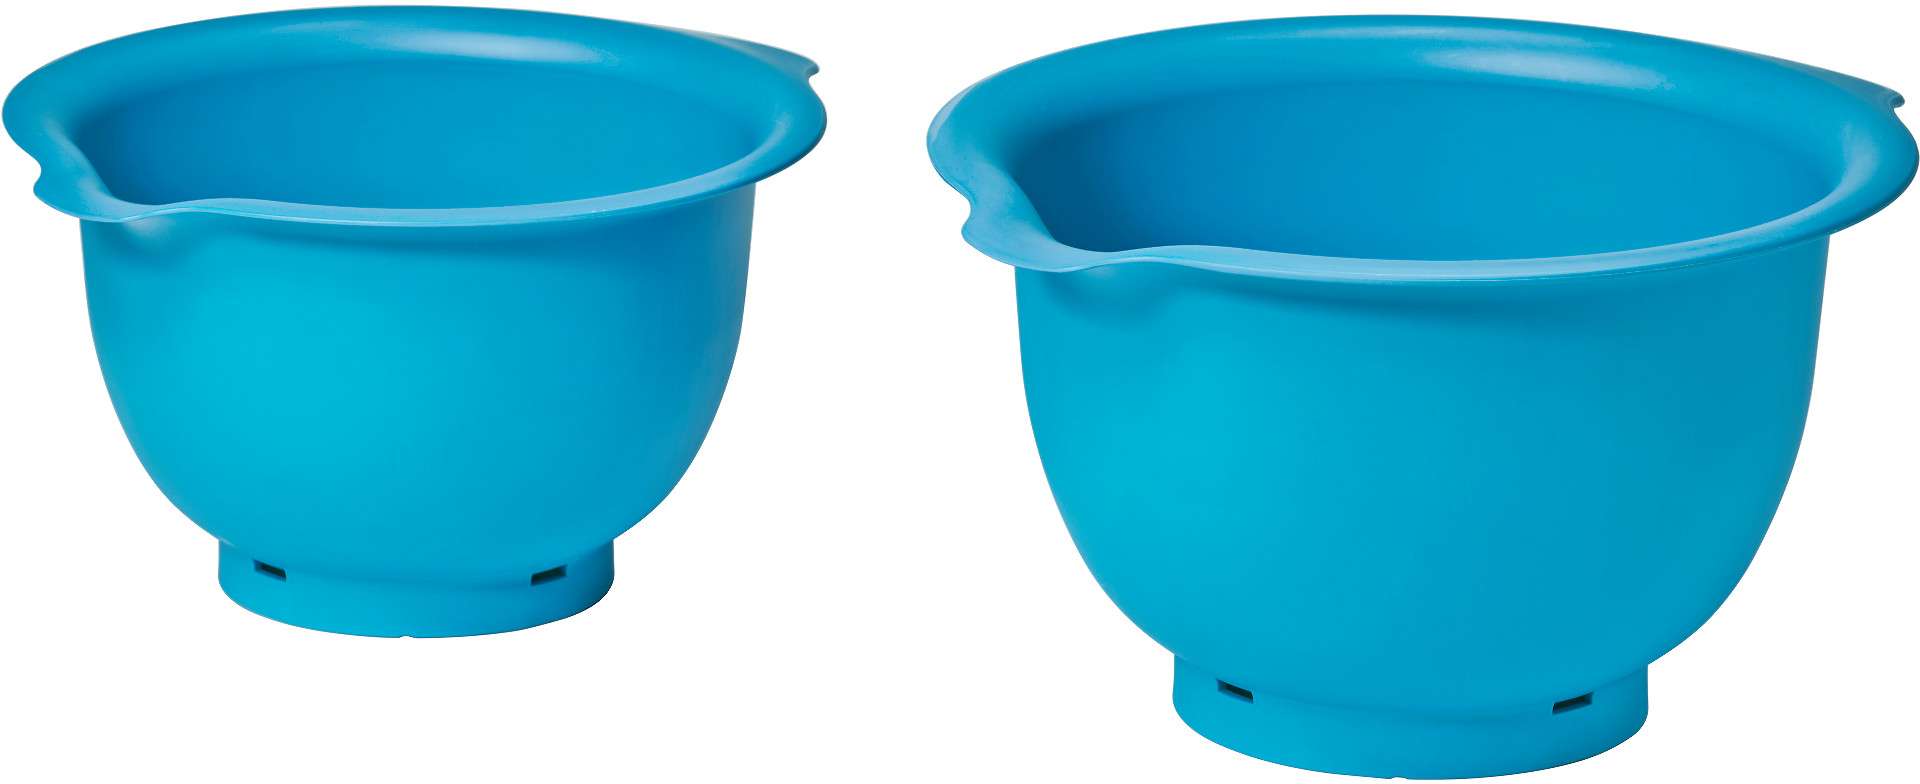 VISPAD Mixing bowl, set of 2 - IKEA